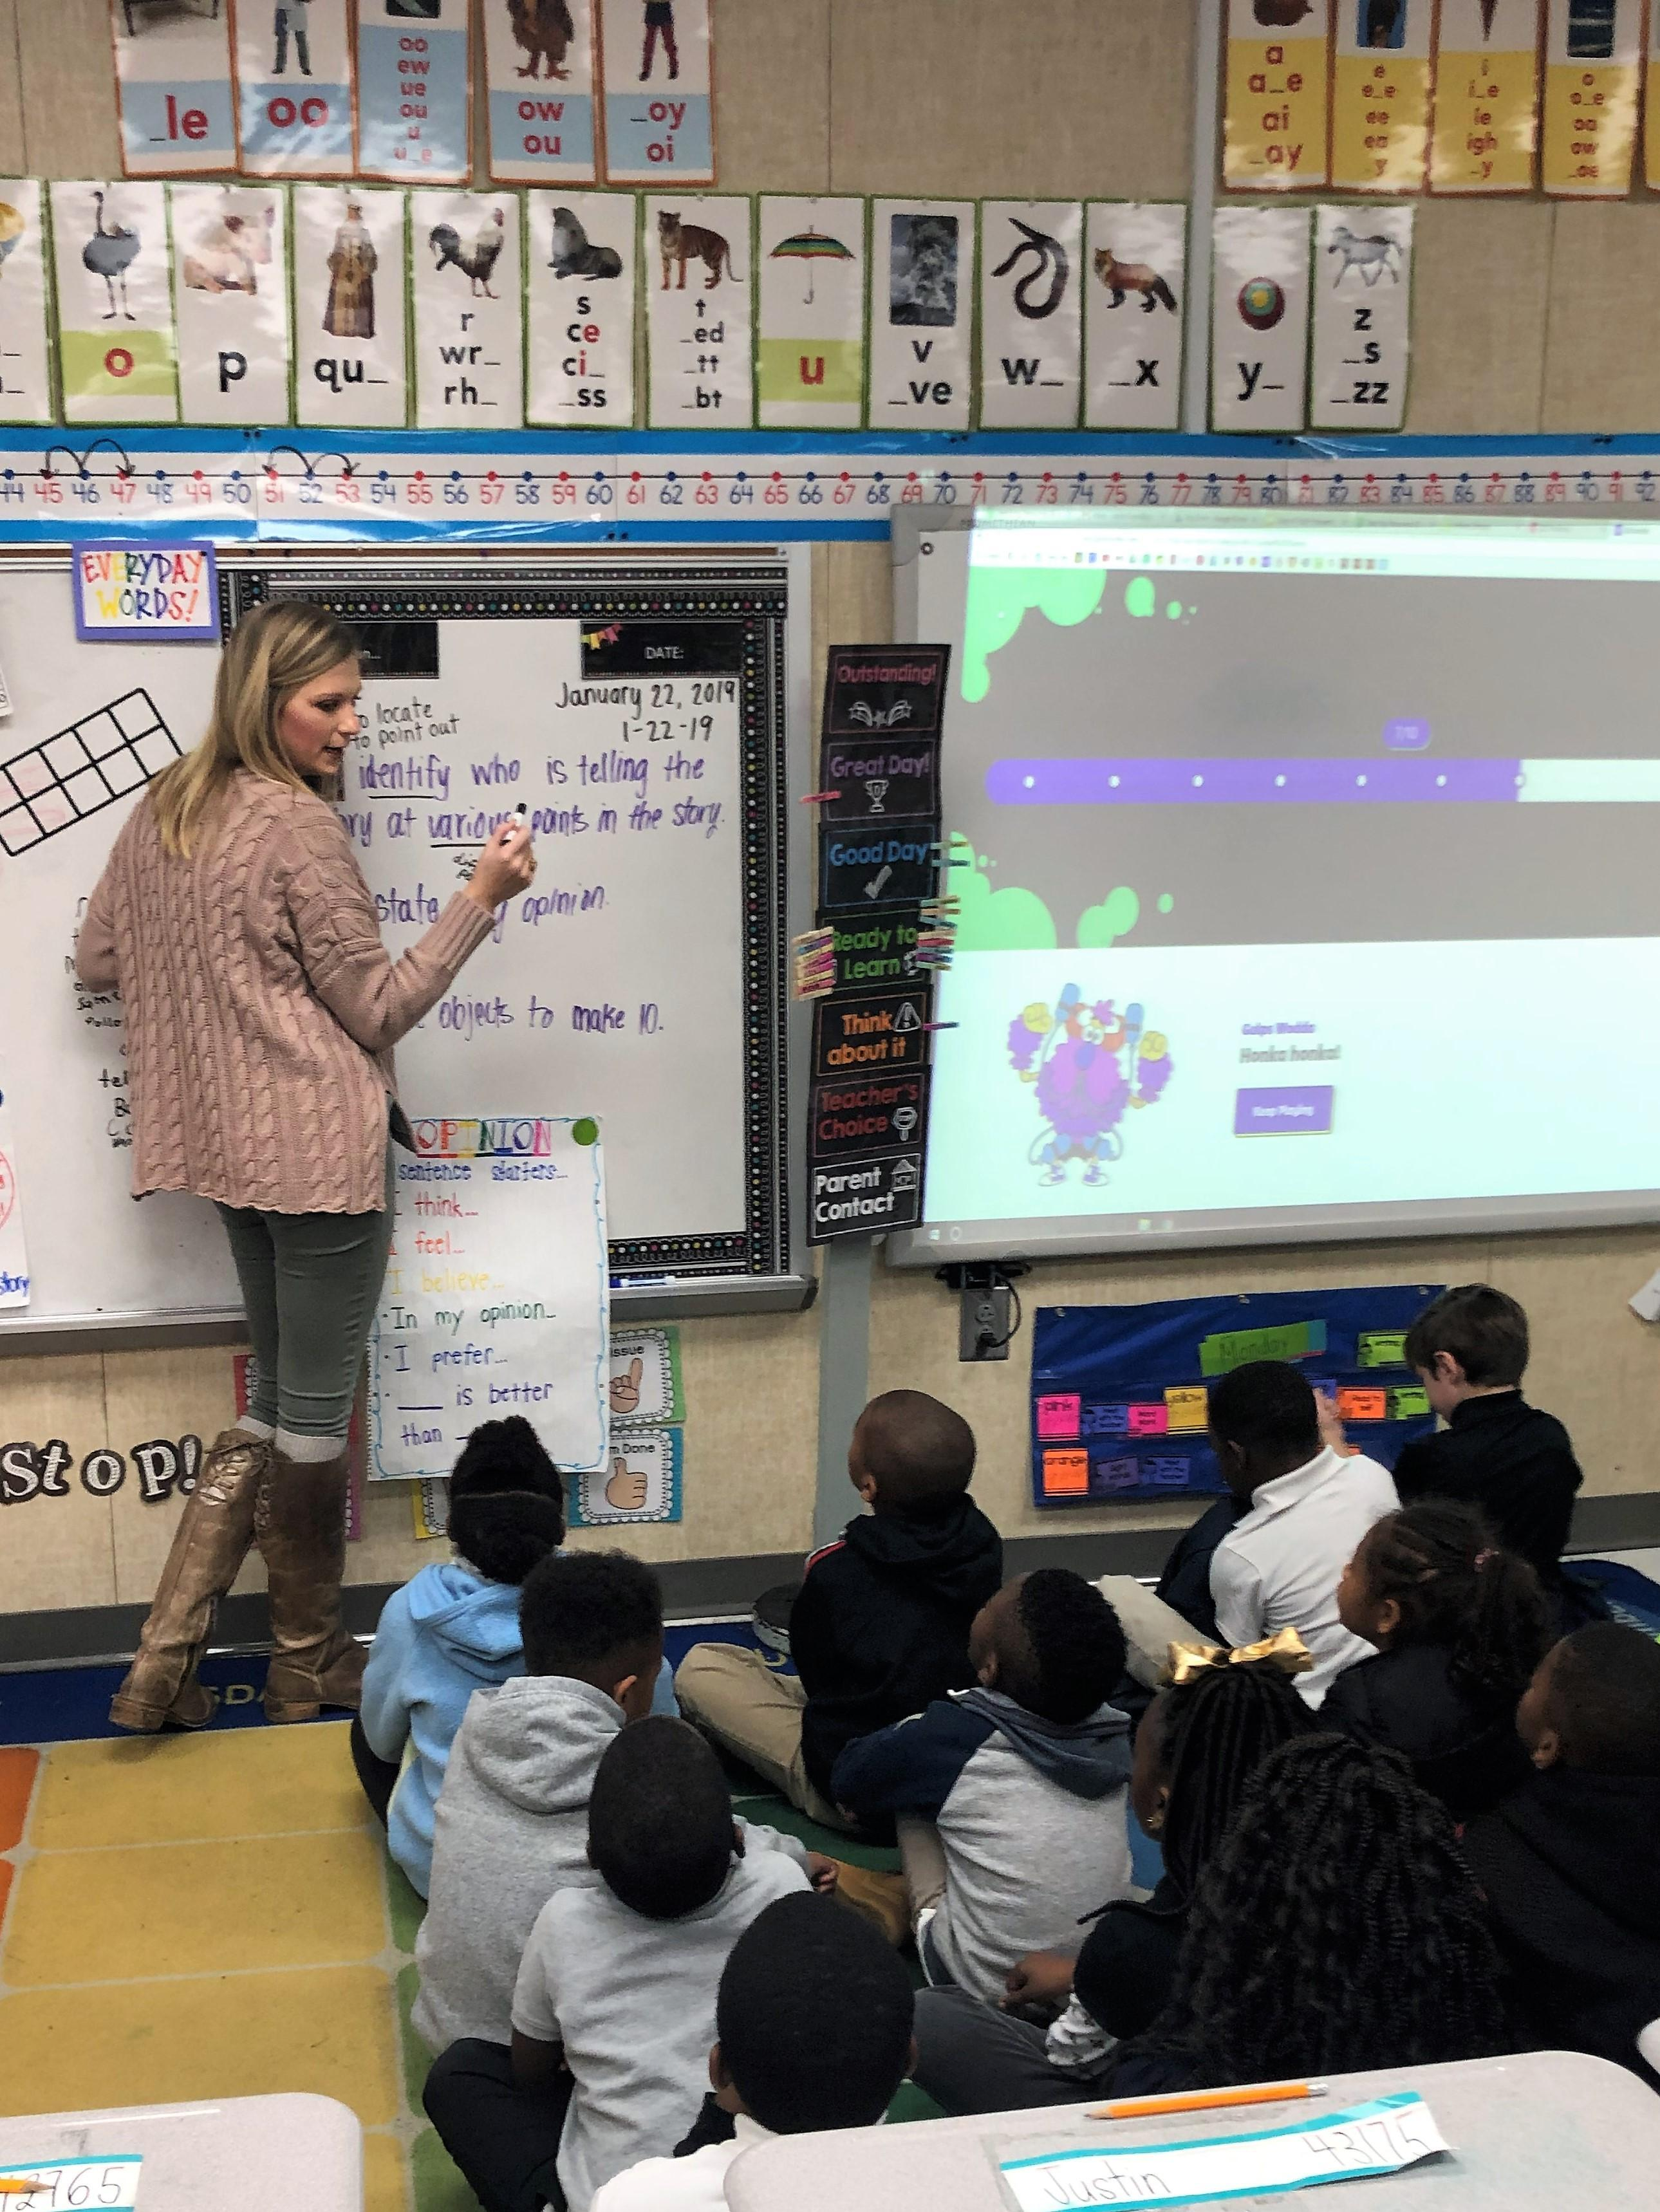 Teacher instructing students with anchor chart